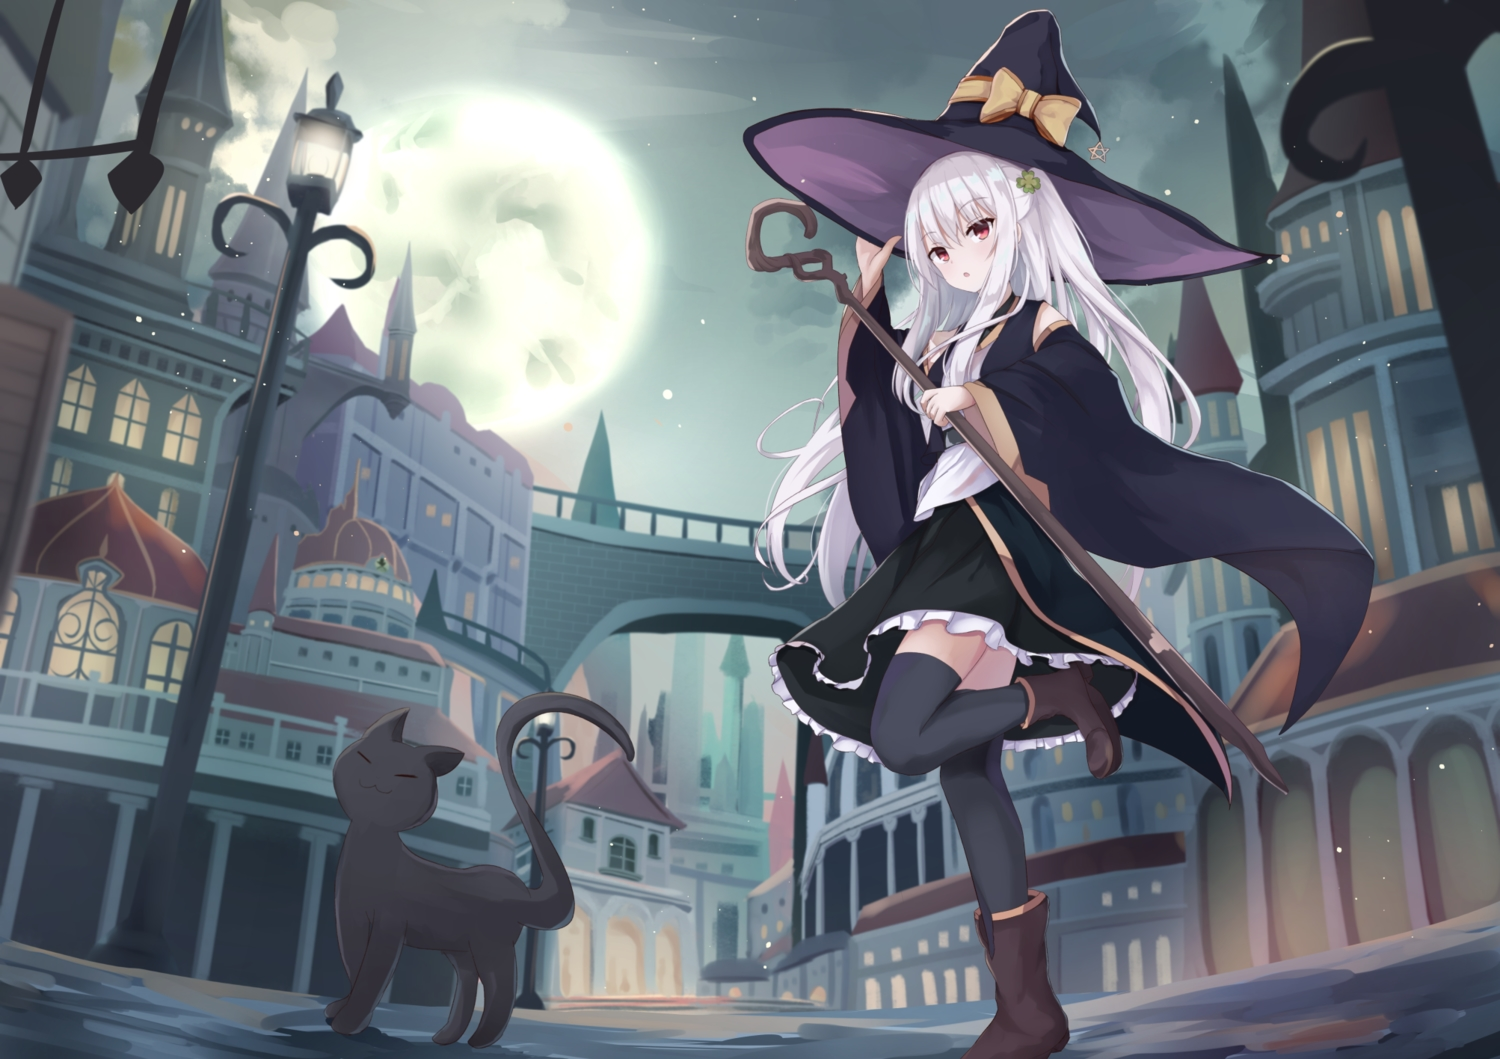 animal building cat city hat moon original red_eyes staff touhourh twintails white_hair witch witch_hat